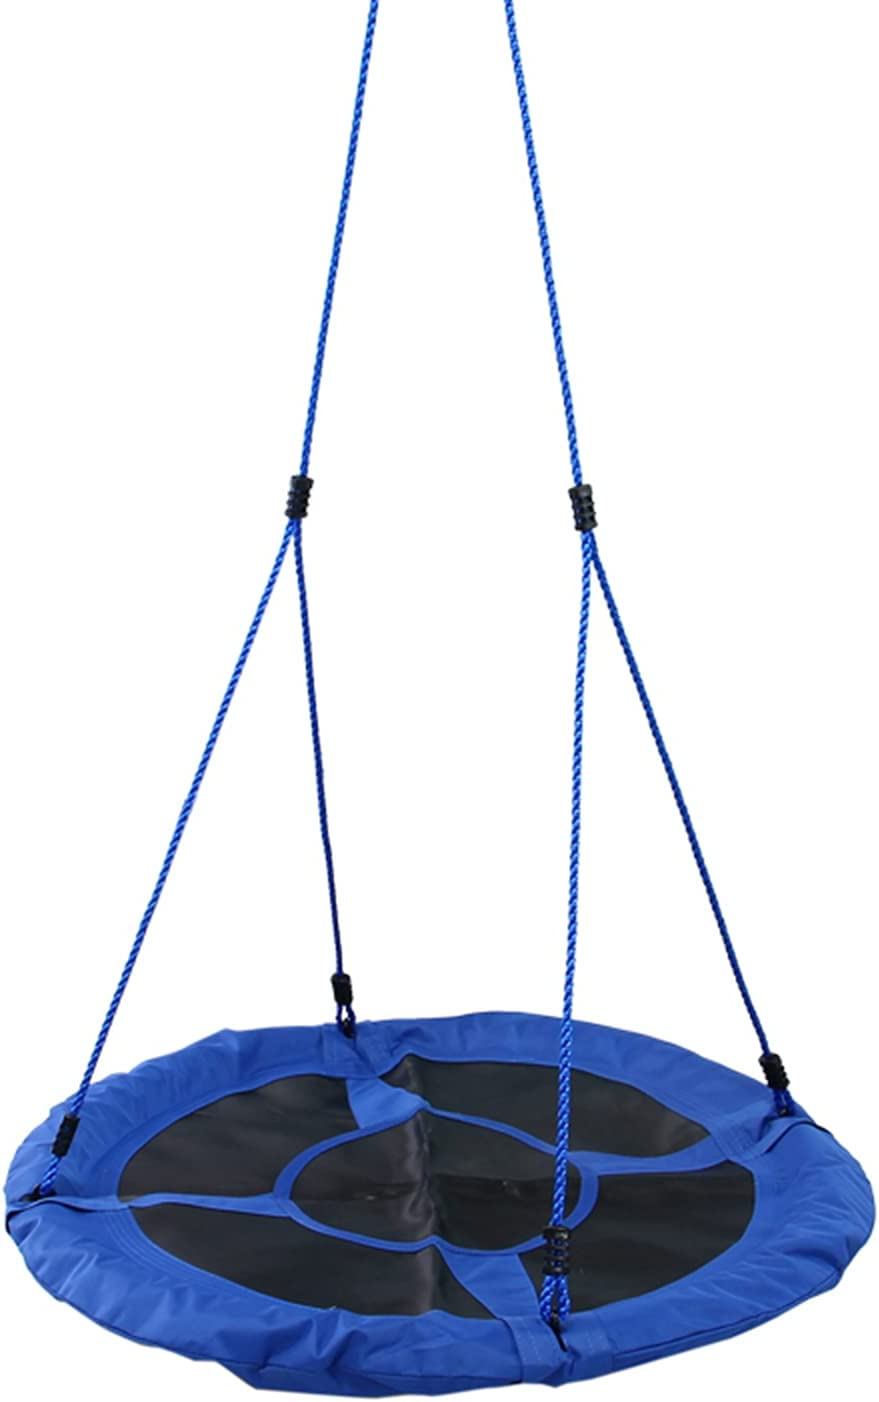 XYZLEO Tree Swing Set with 360° Safety Rotator Super sale period limited 40